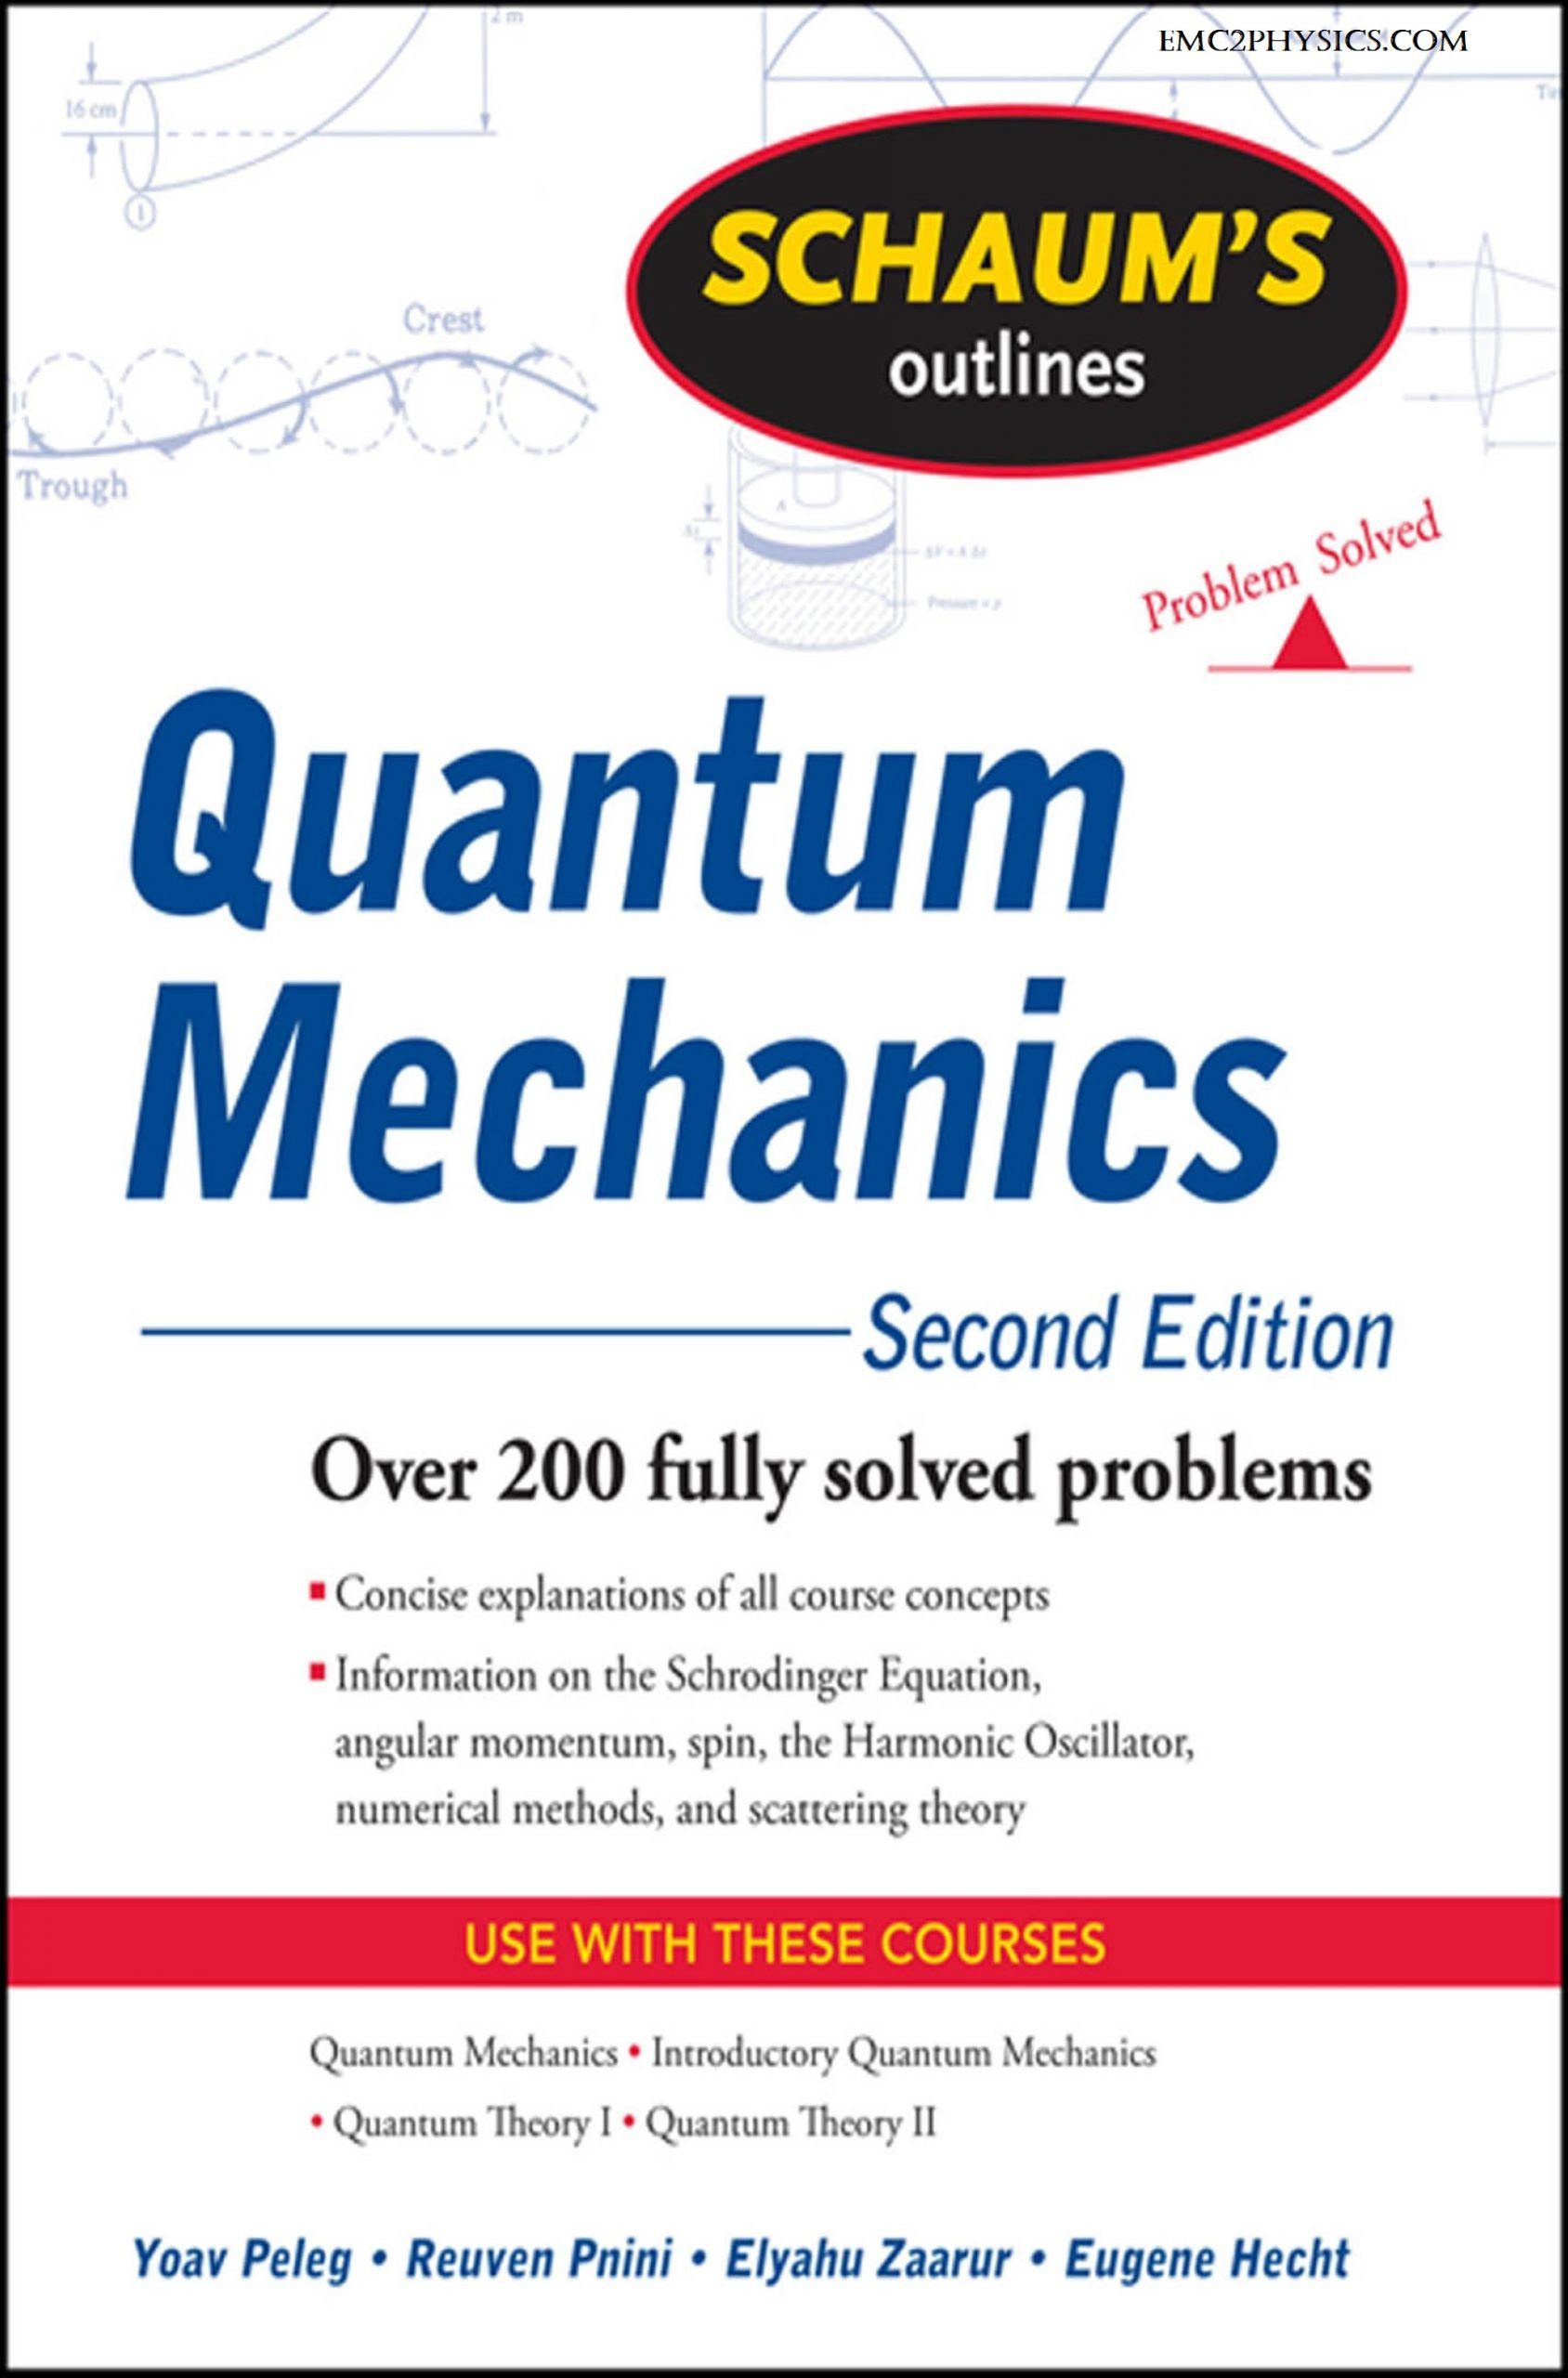 Schaums-Outline-Quantummechanics-second-edition-scaled.jpg